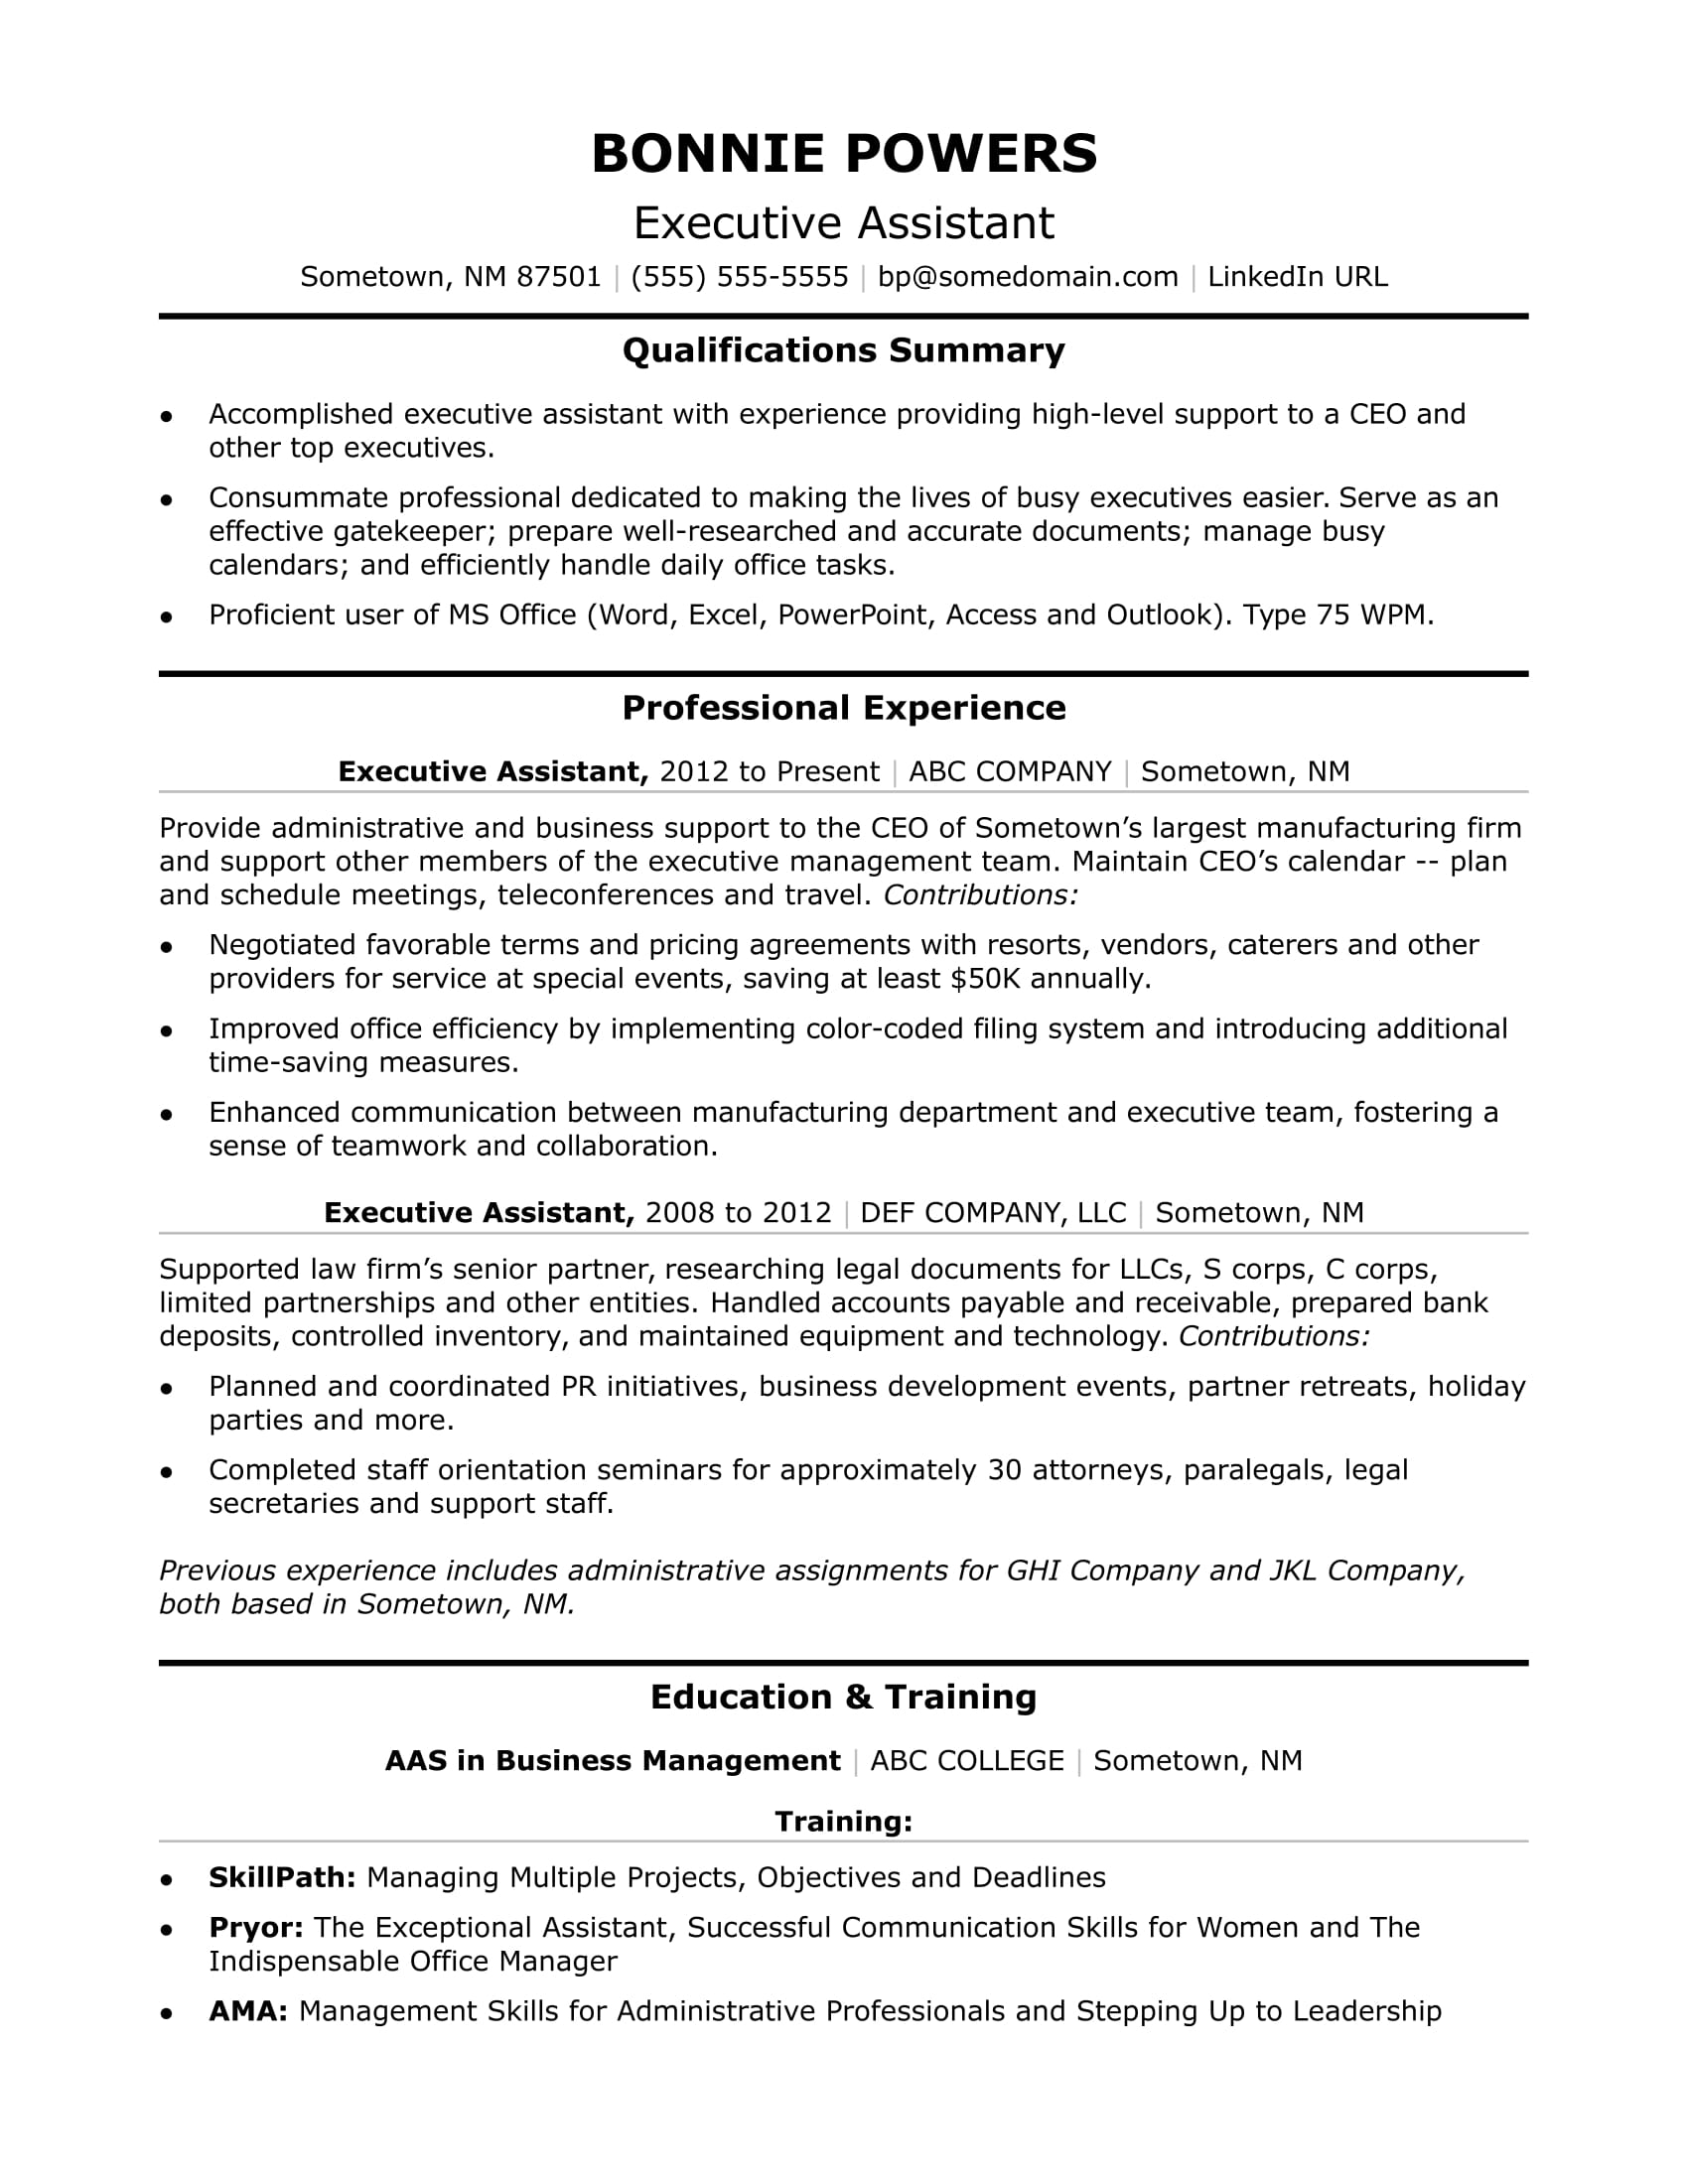 executive administrative assistant resume sample monster experienced skills software Resume Experienced Executive Assistant Resume